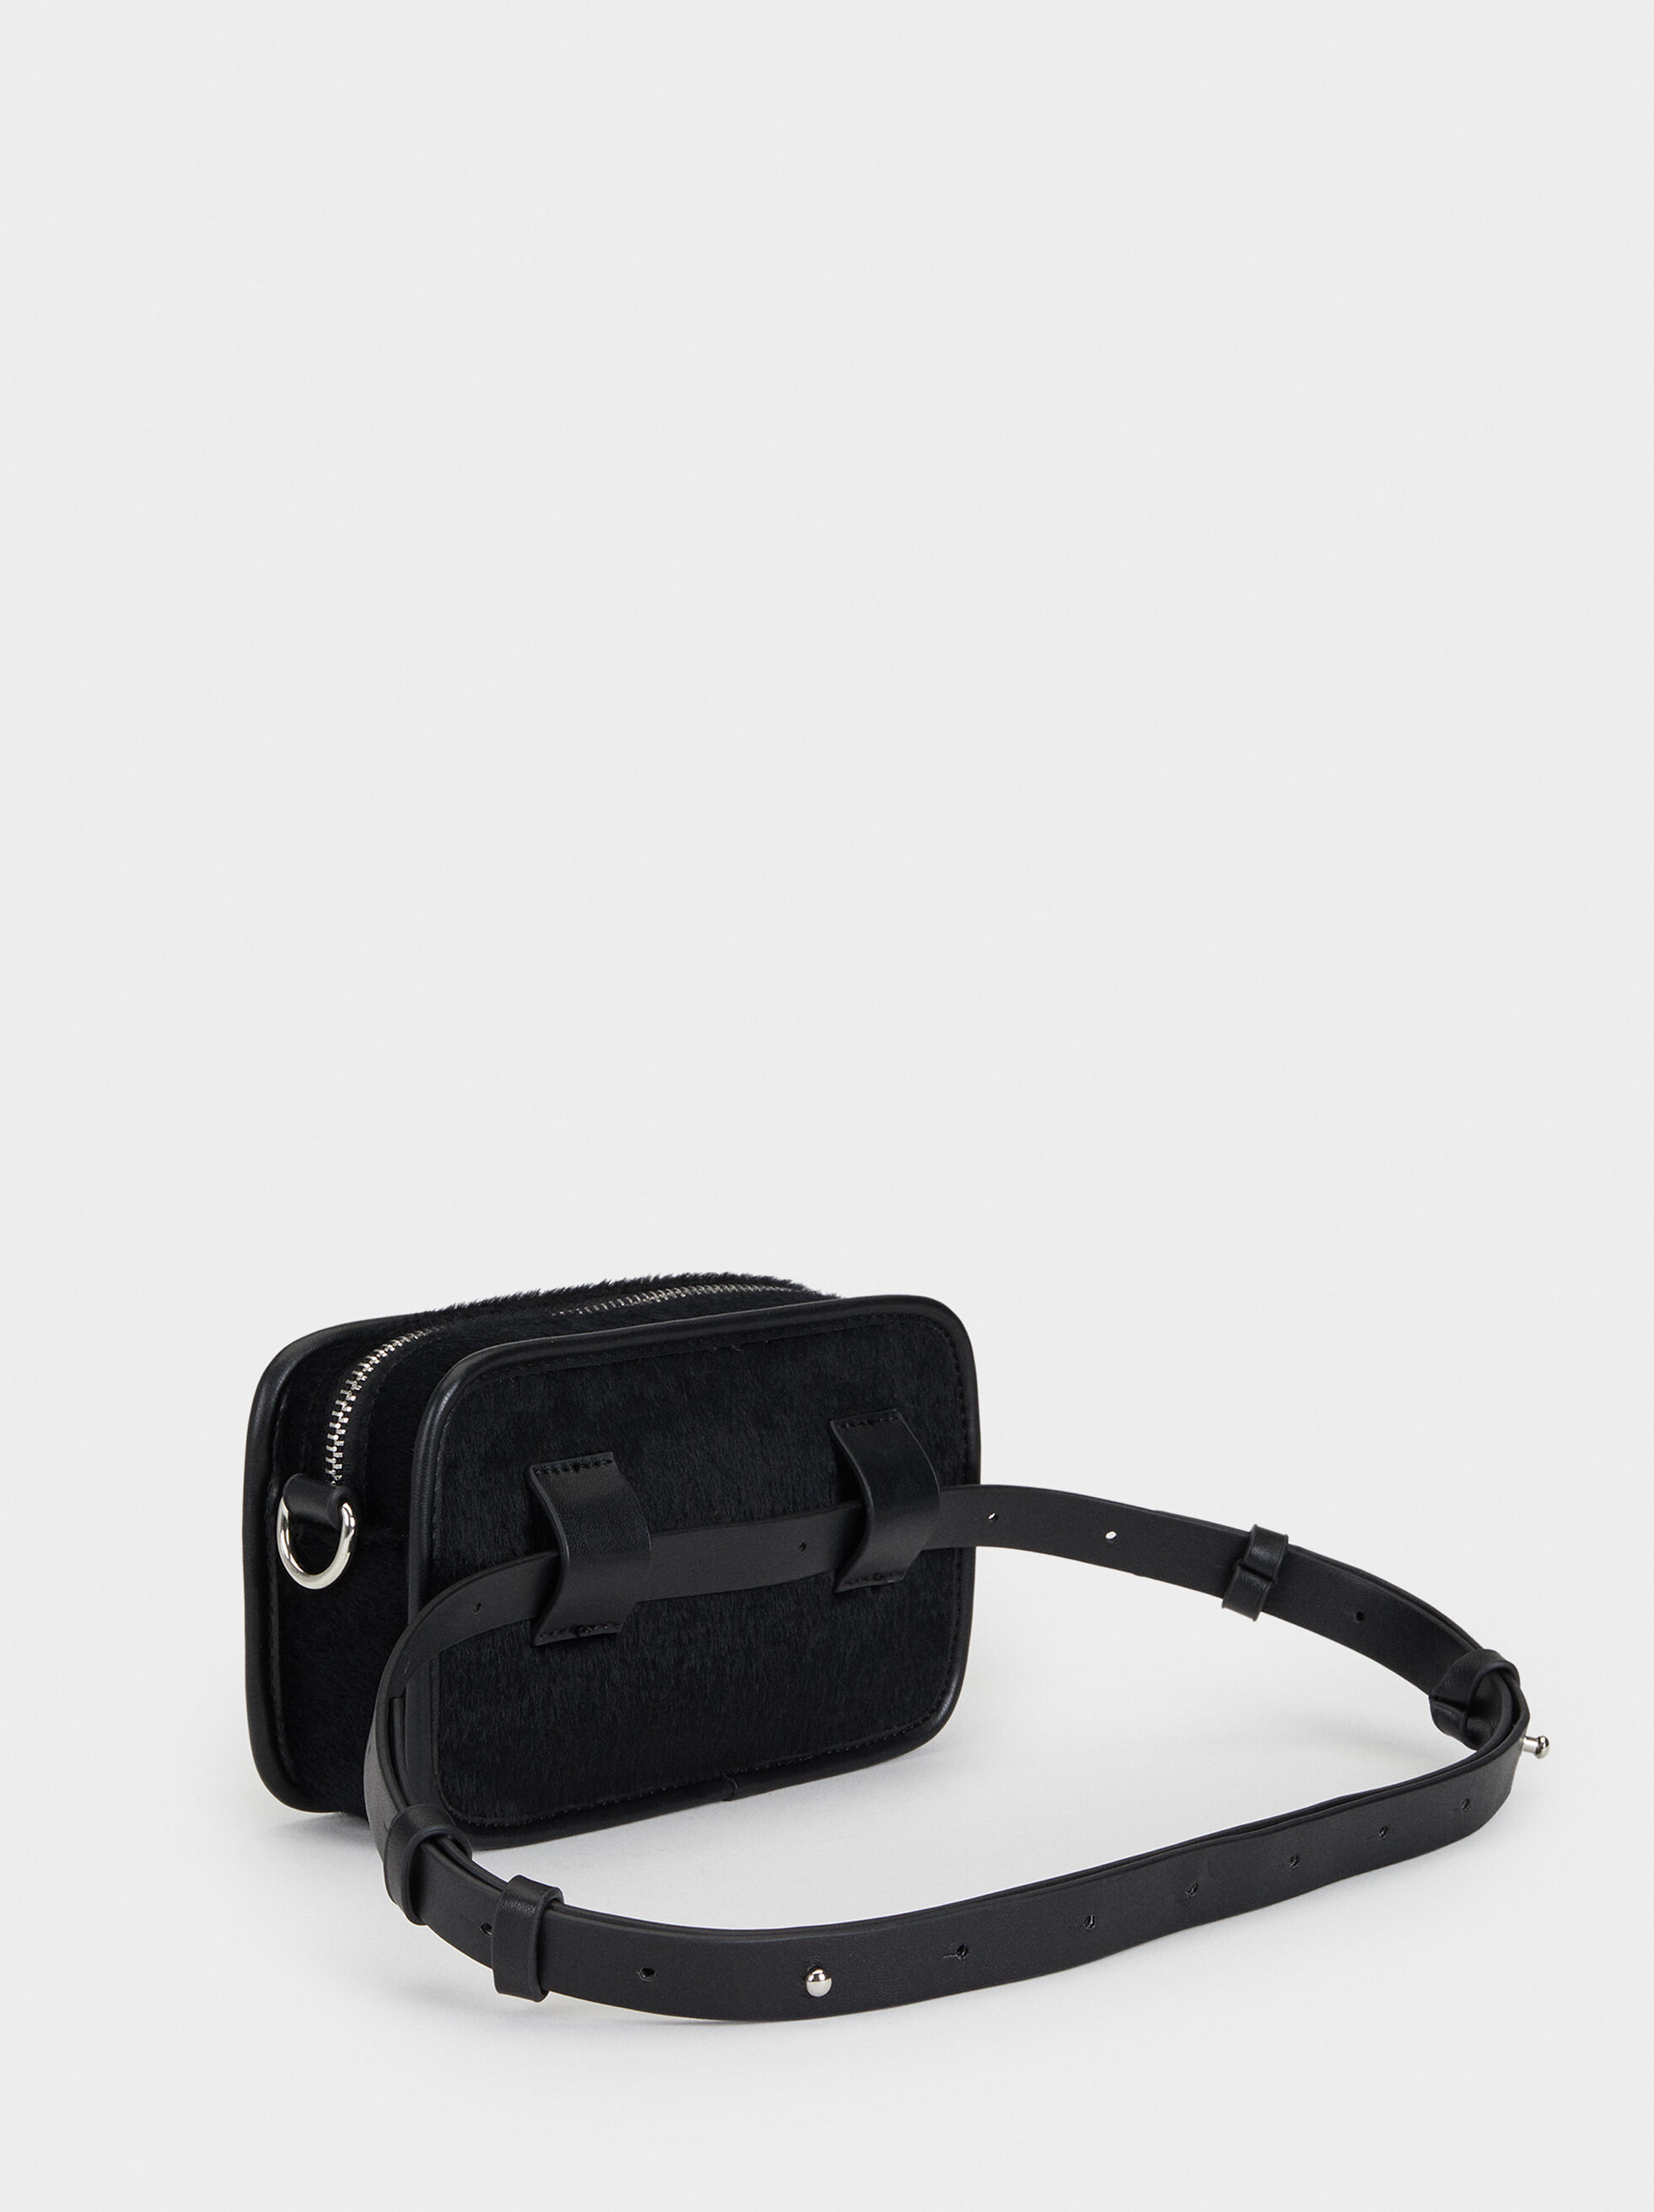 Suede Texture Crossbody Bag, Black, hi-res